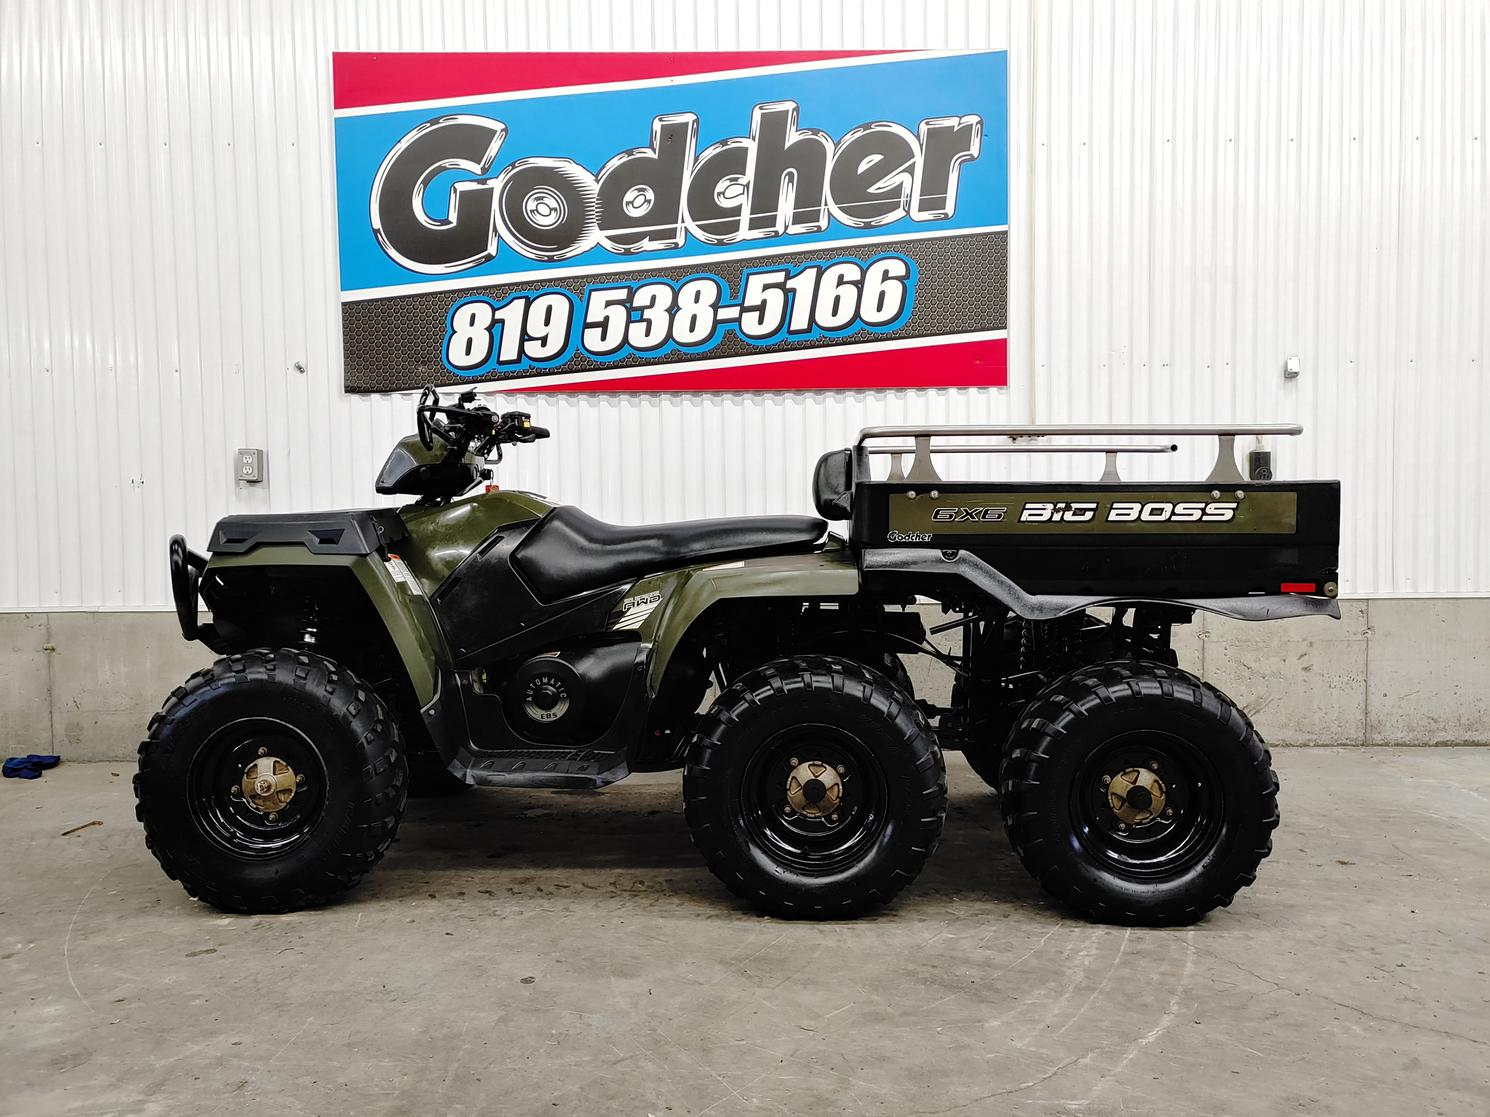 2014 Polaris Sportsman 800 Big boss 6×6